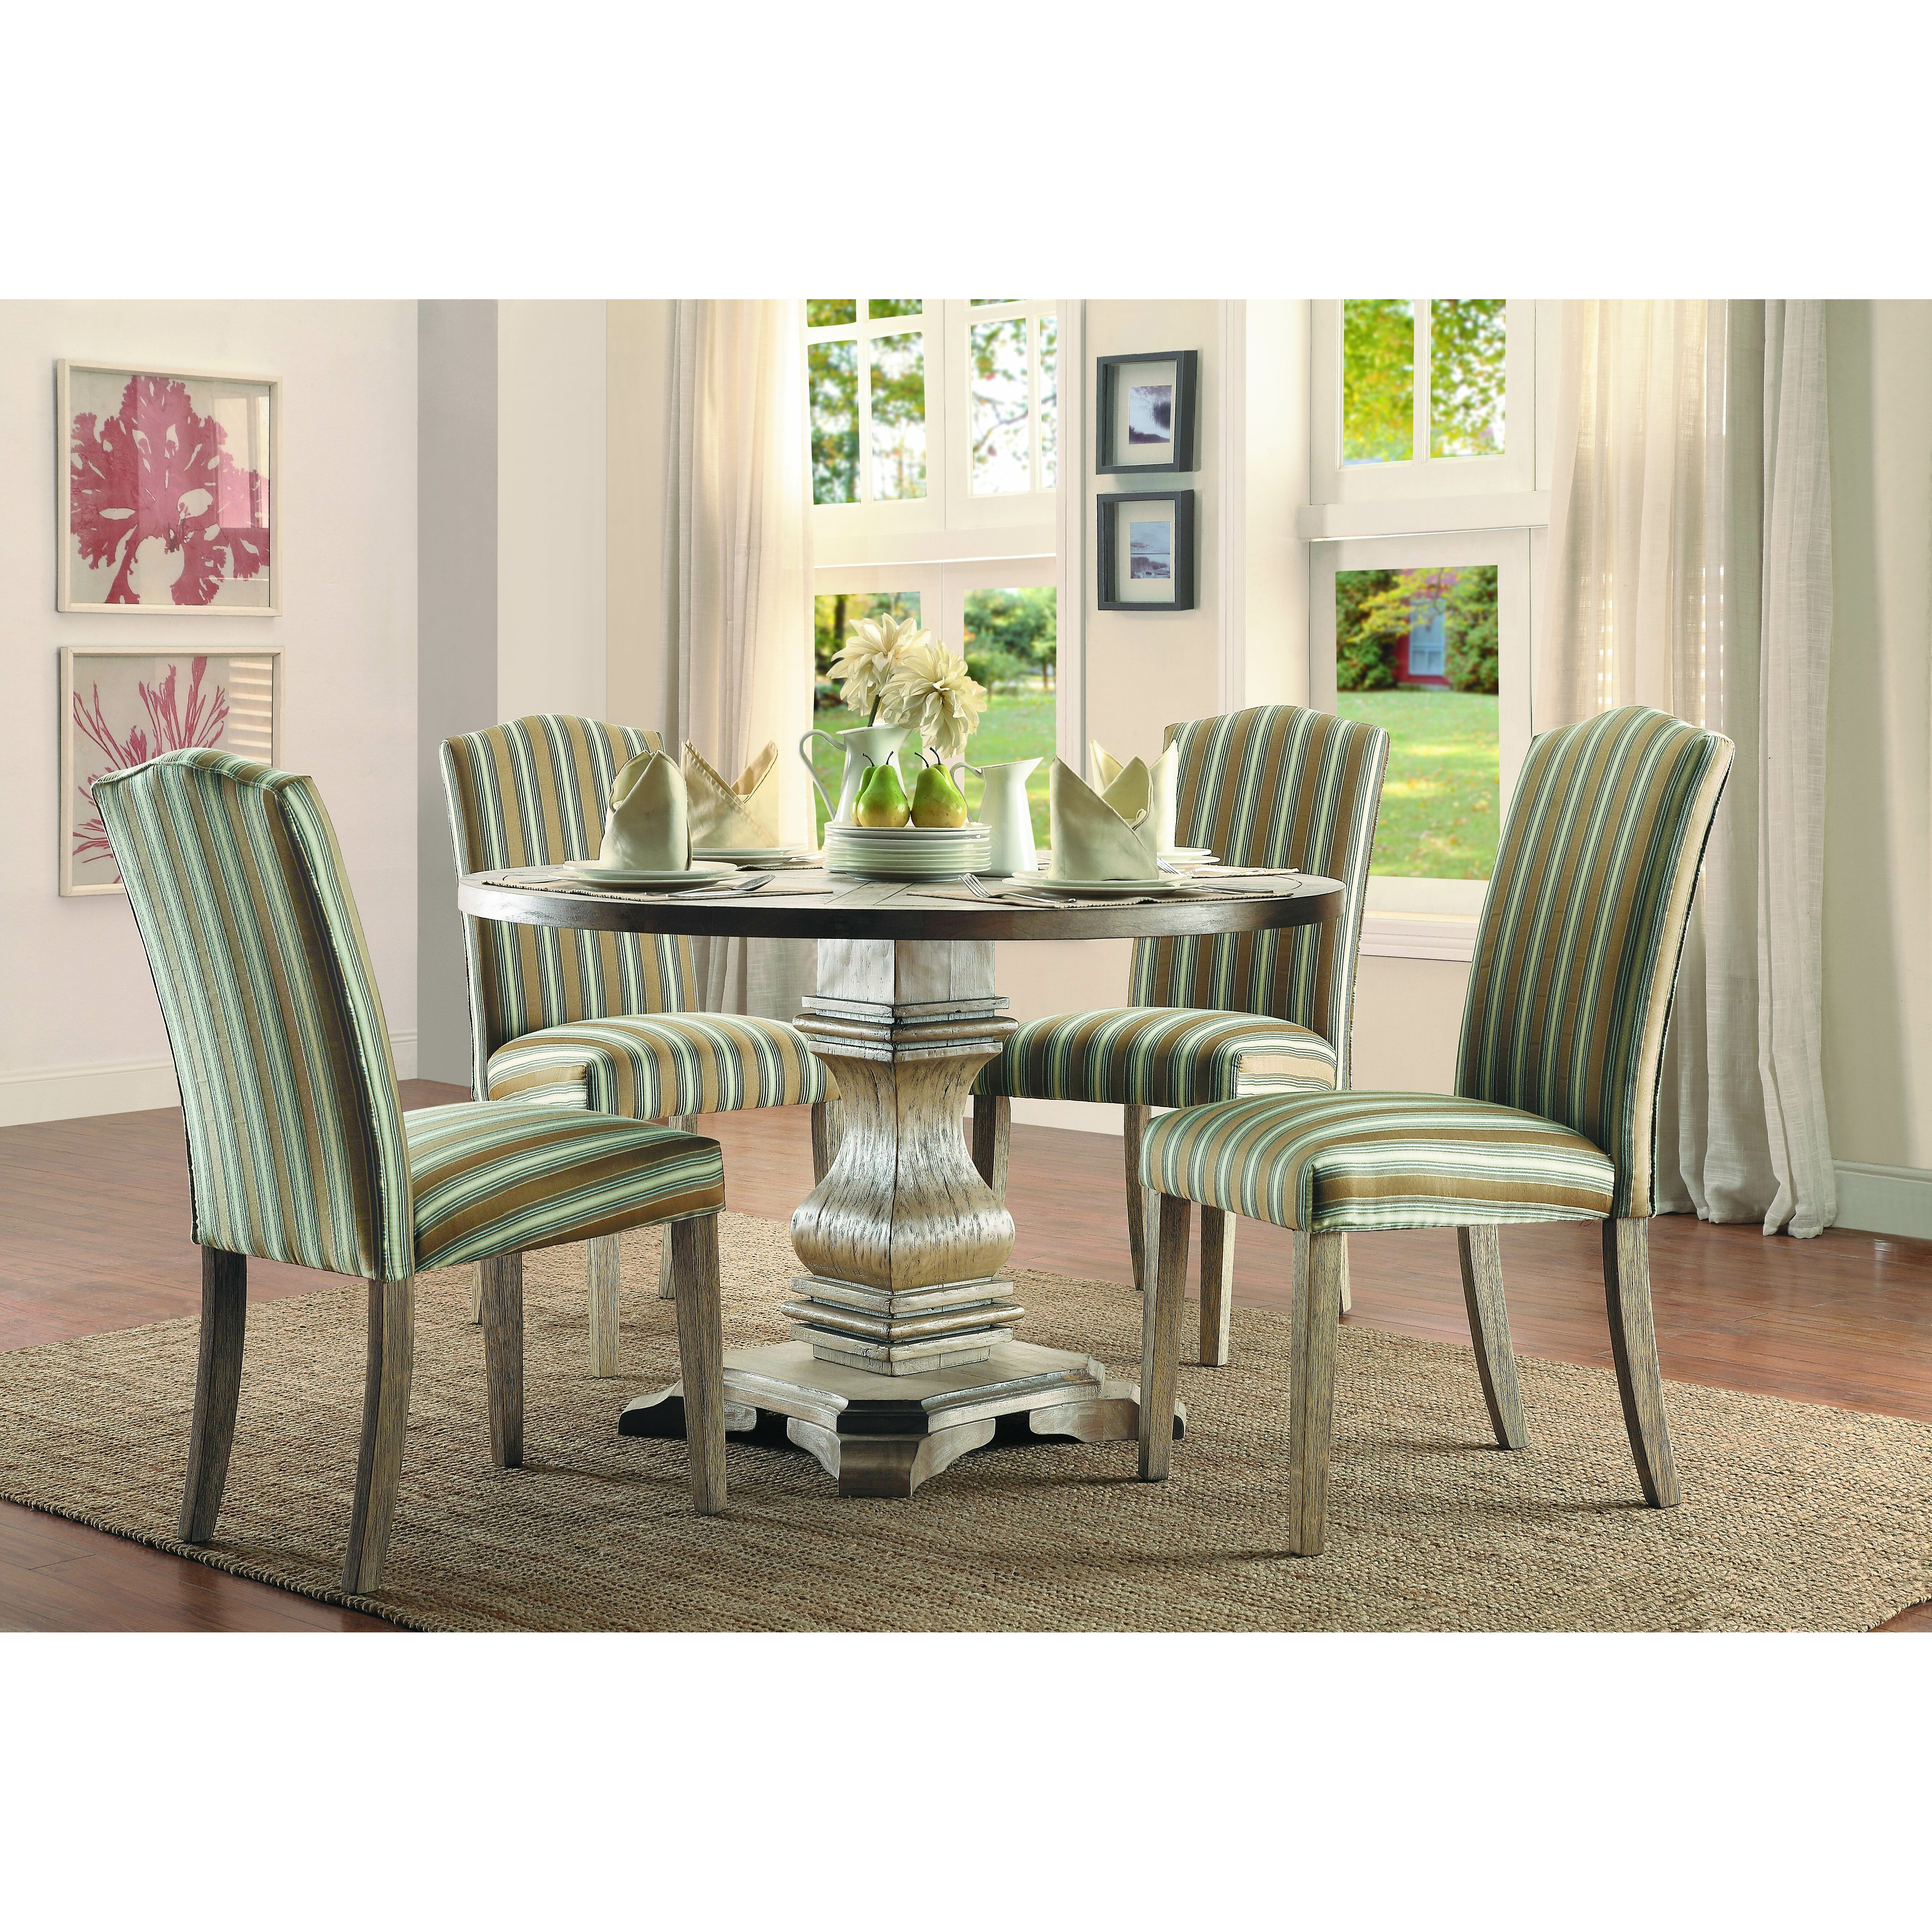 informal dining table setting. the importance of learning table